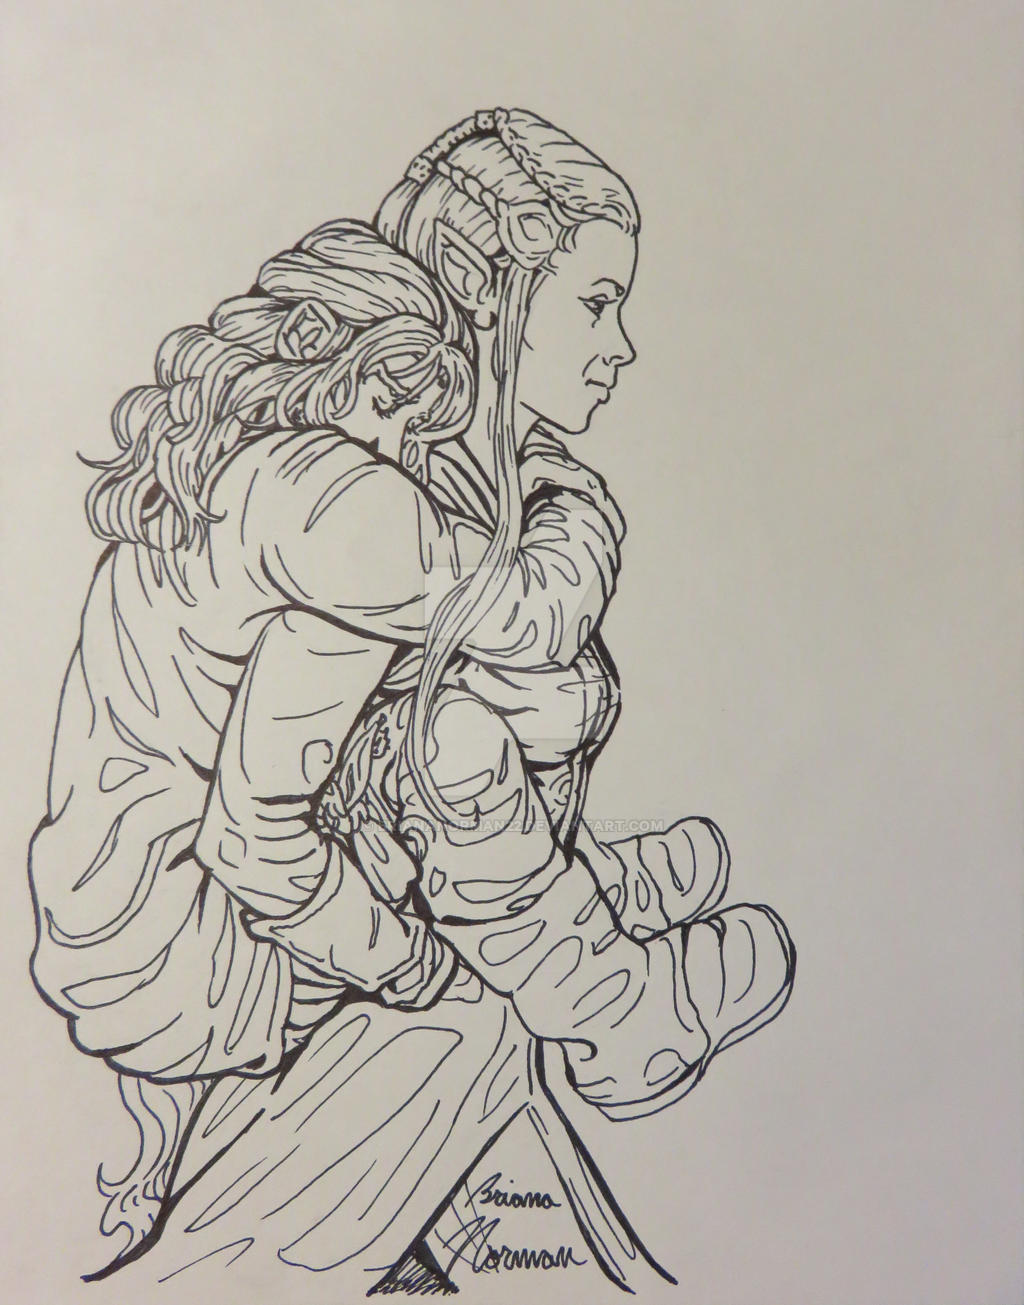 Kili And Tauriel Piggyback By BrianaNorman22 On DeviantArt